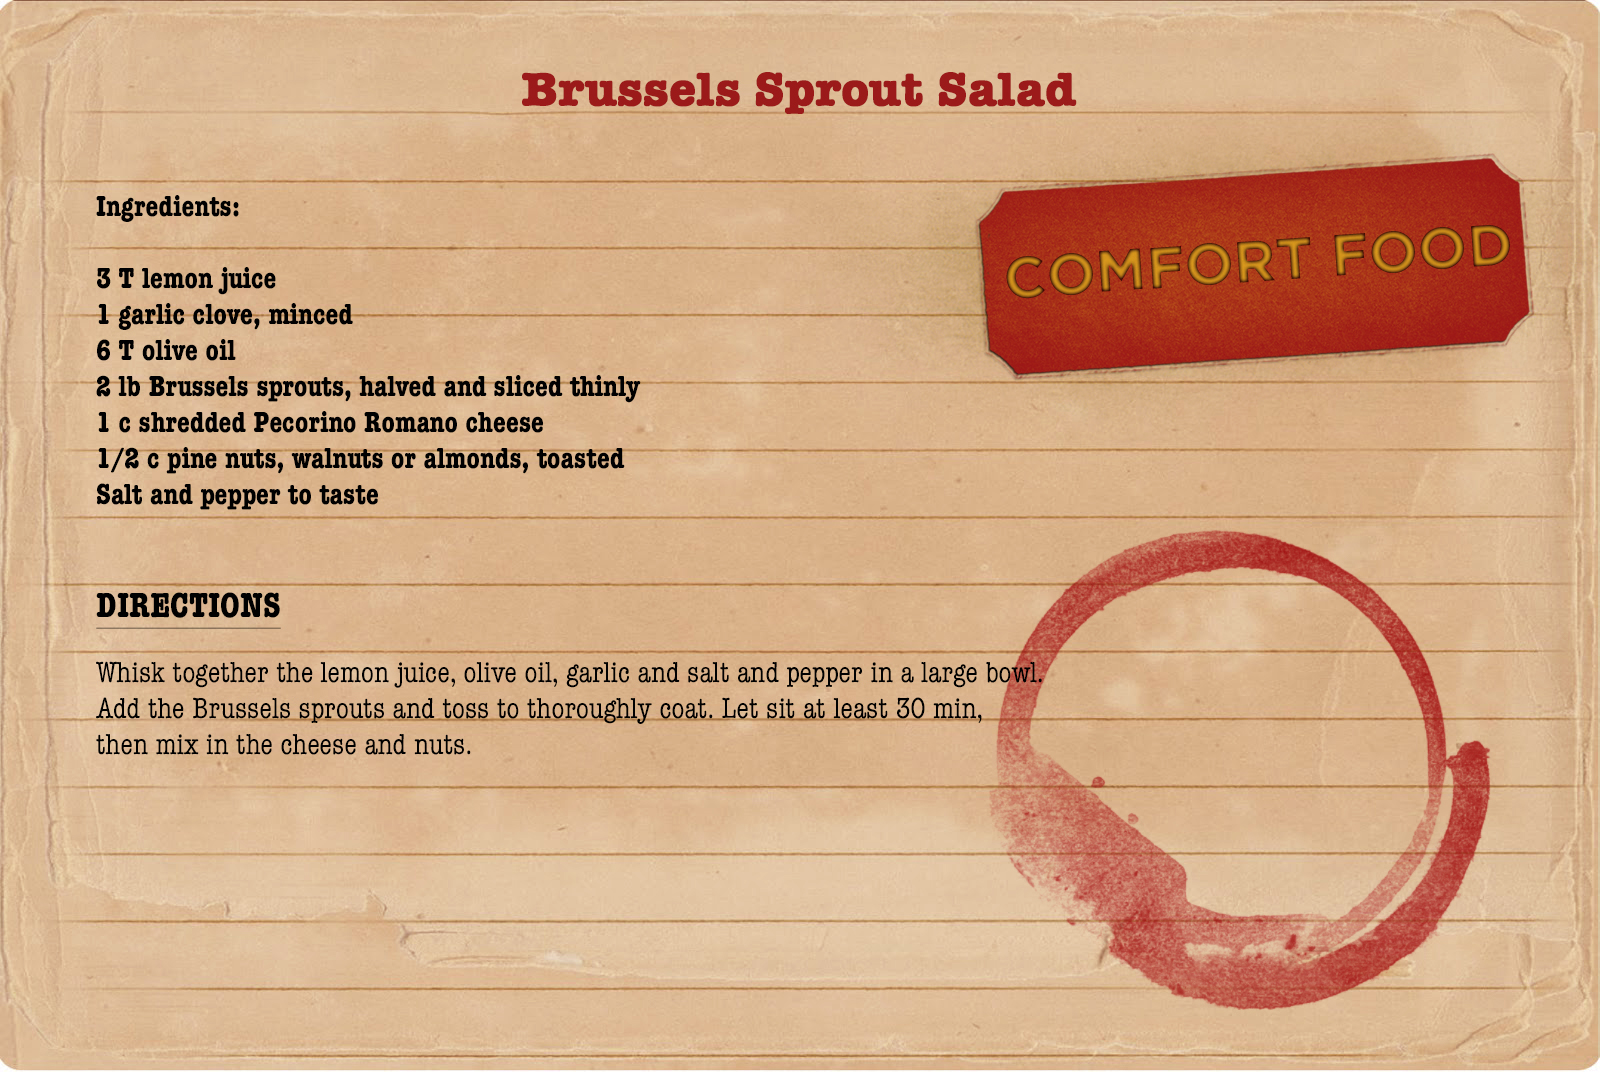 My College Advice Sunday Dinners Brussels Sprout Salad